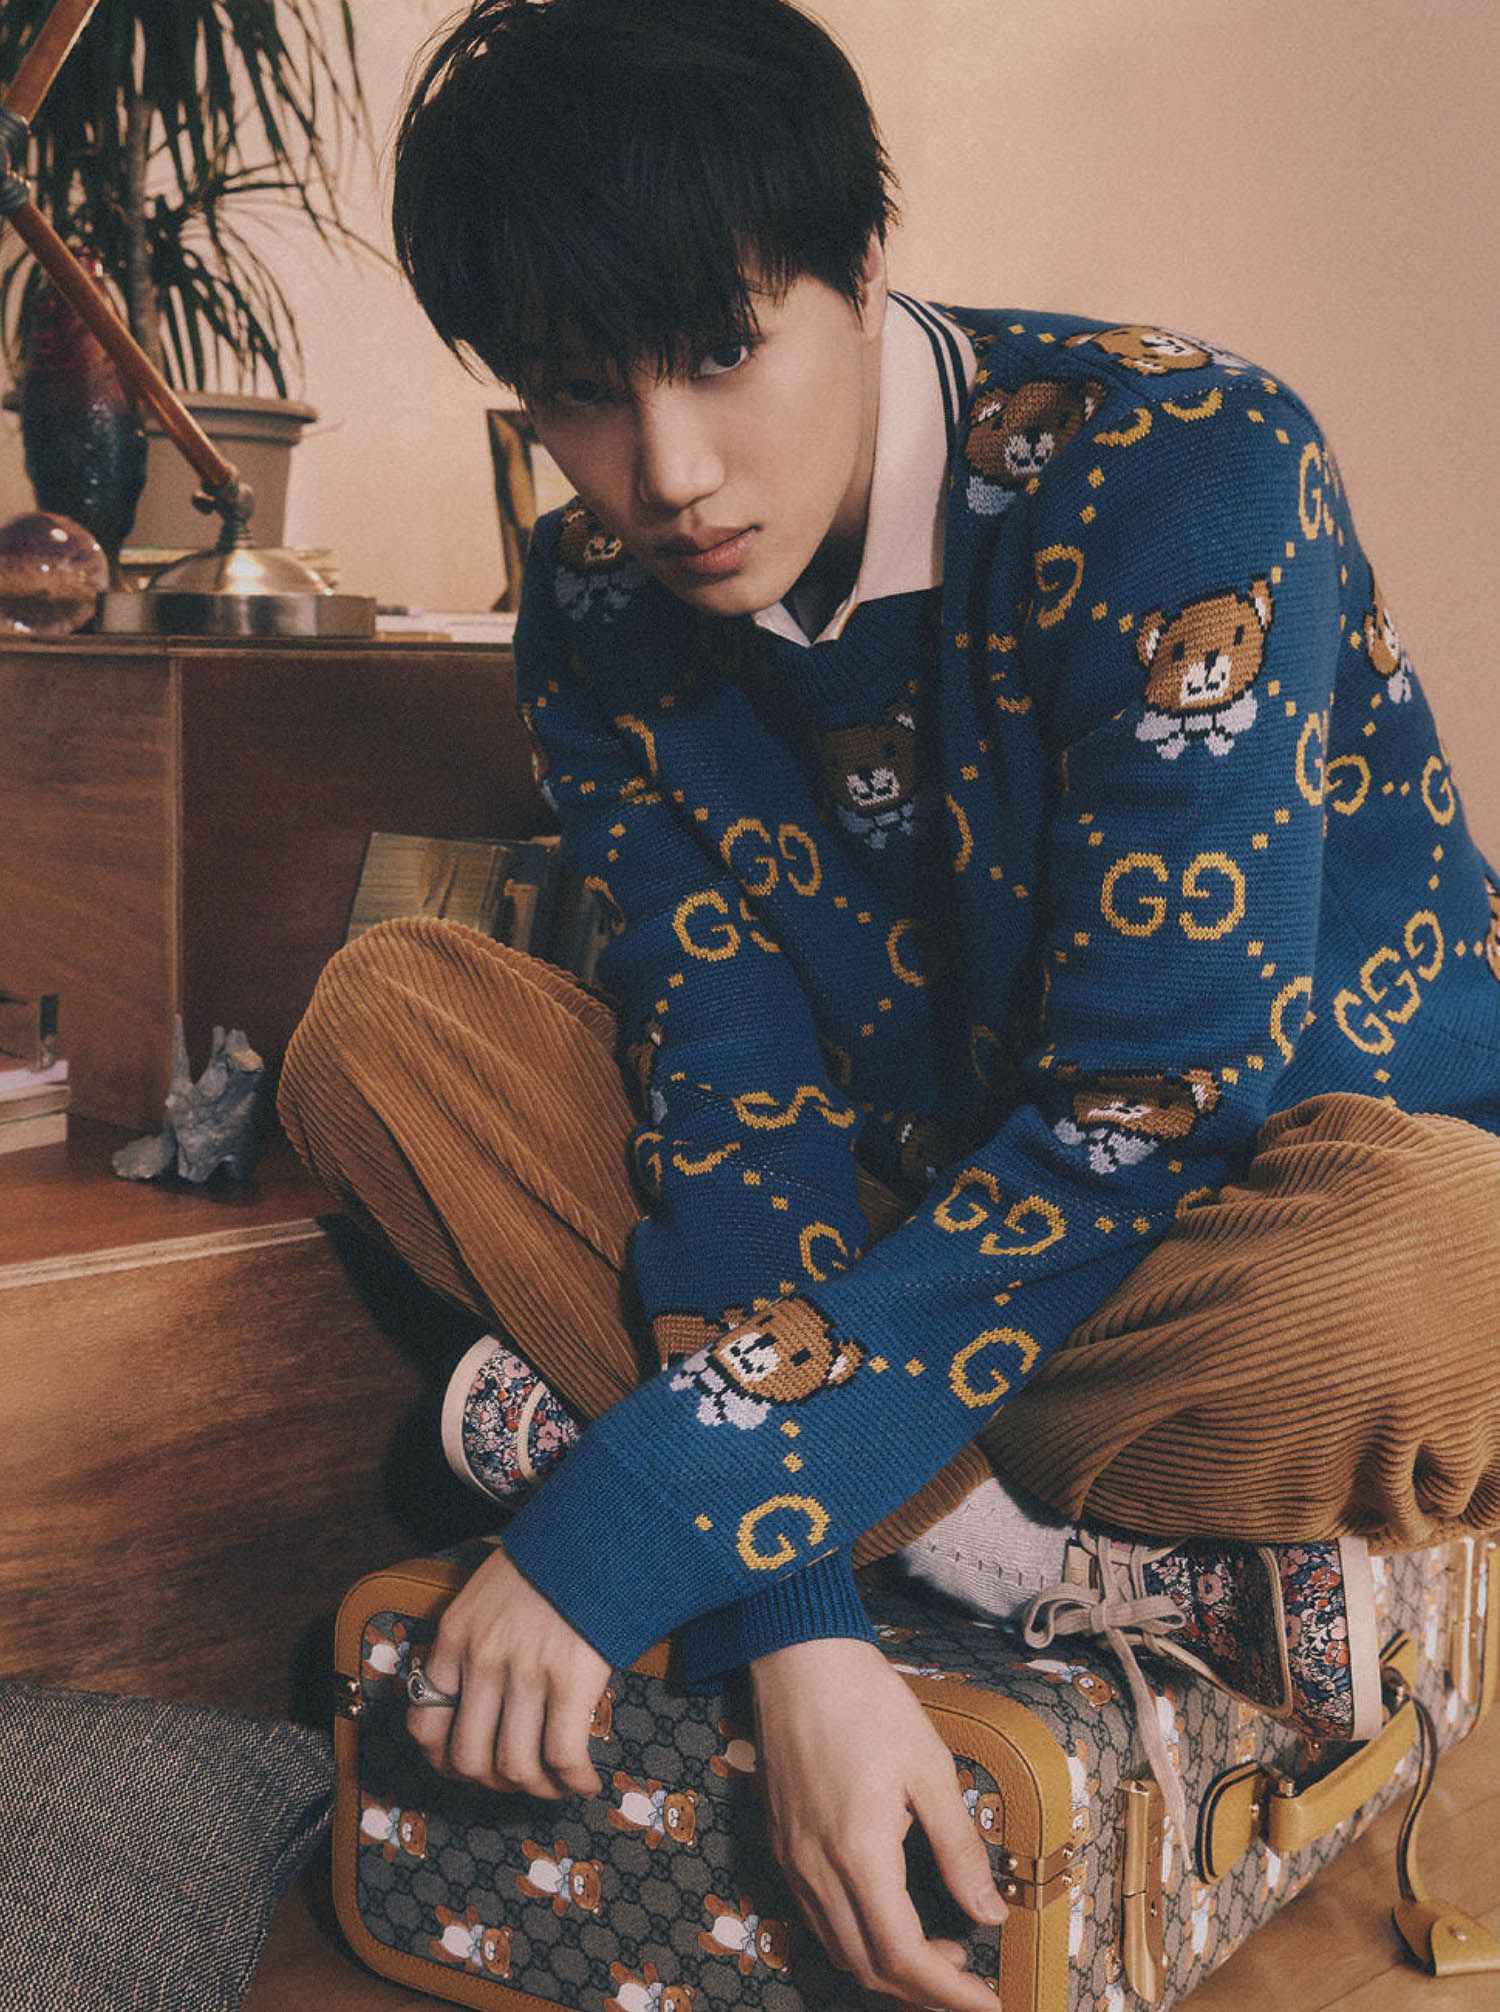 Kai by Go Wontae for Esquire Singapore April 2021